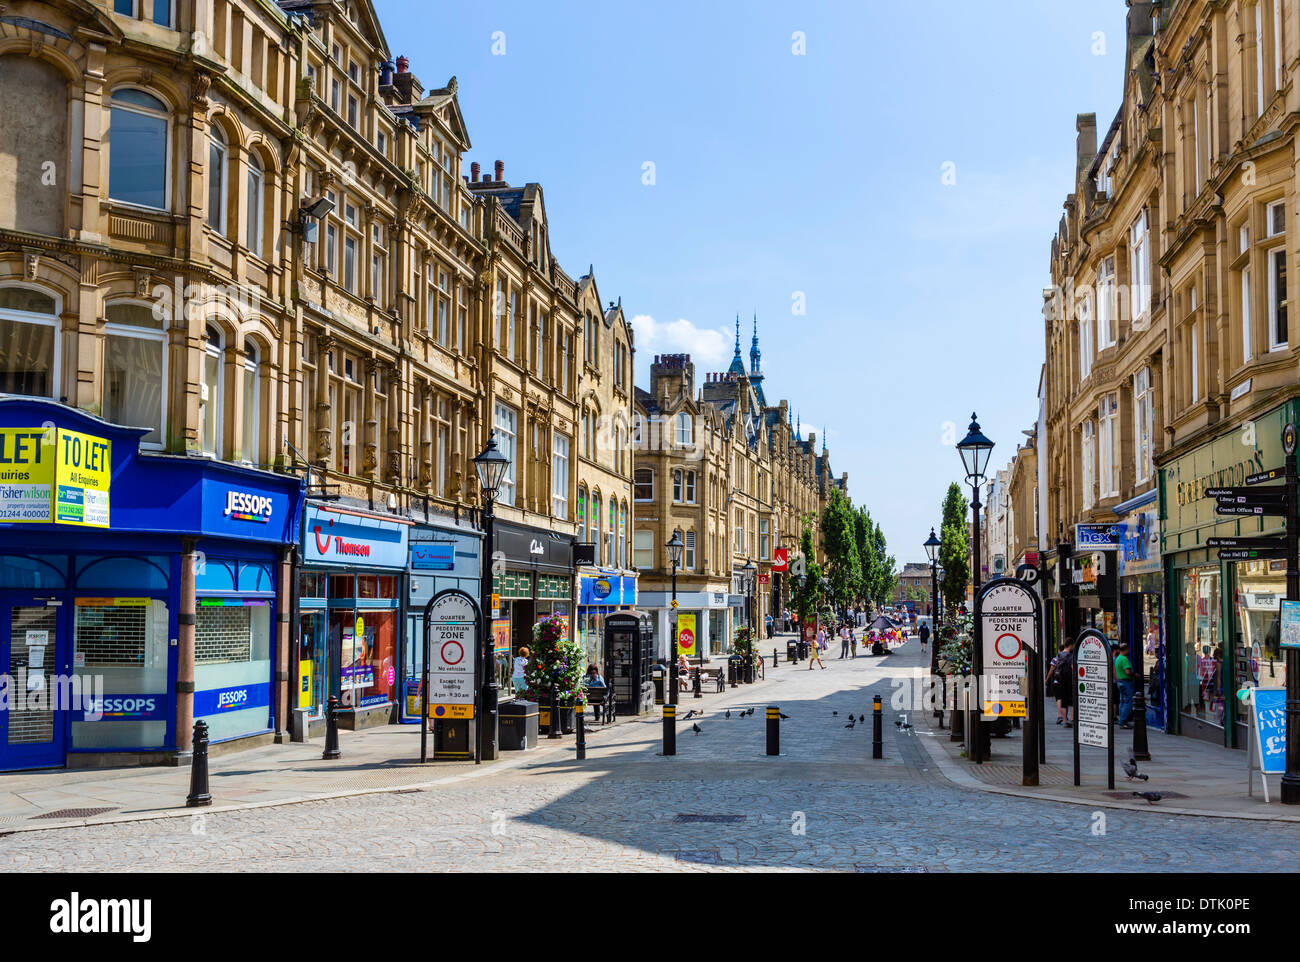 Shops on Cornmarket in the city centre, Halifax, West Yorkshire, England, UK Stock Photo